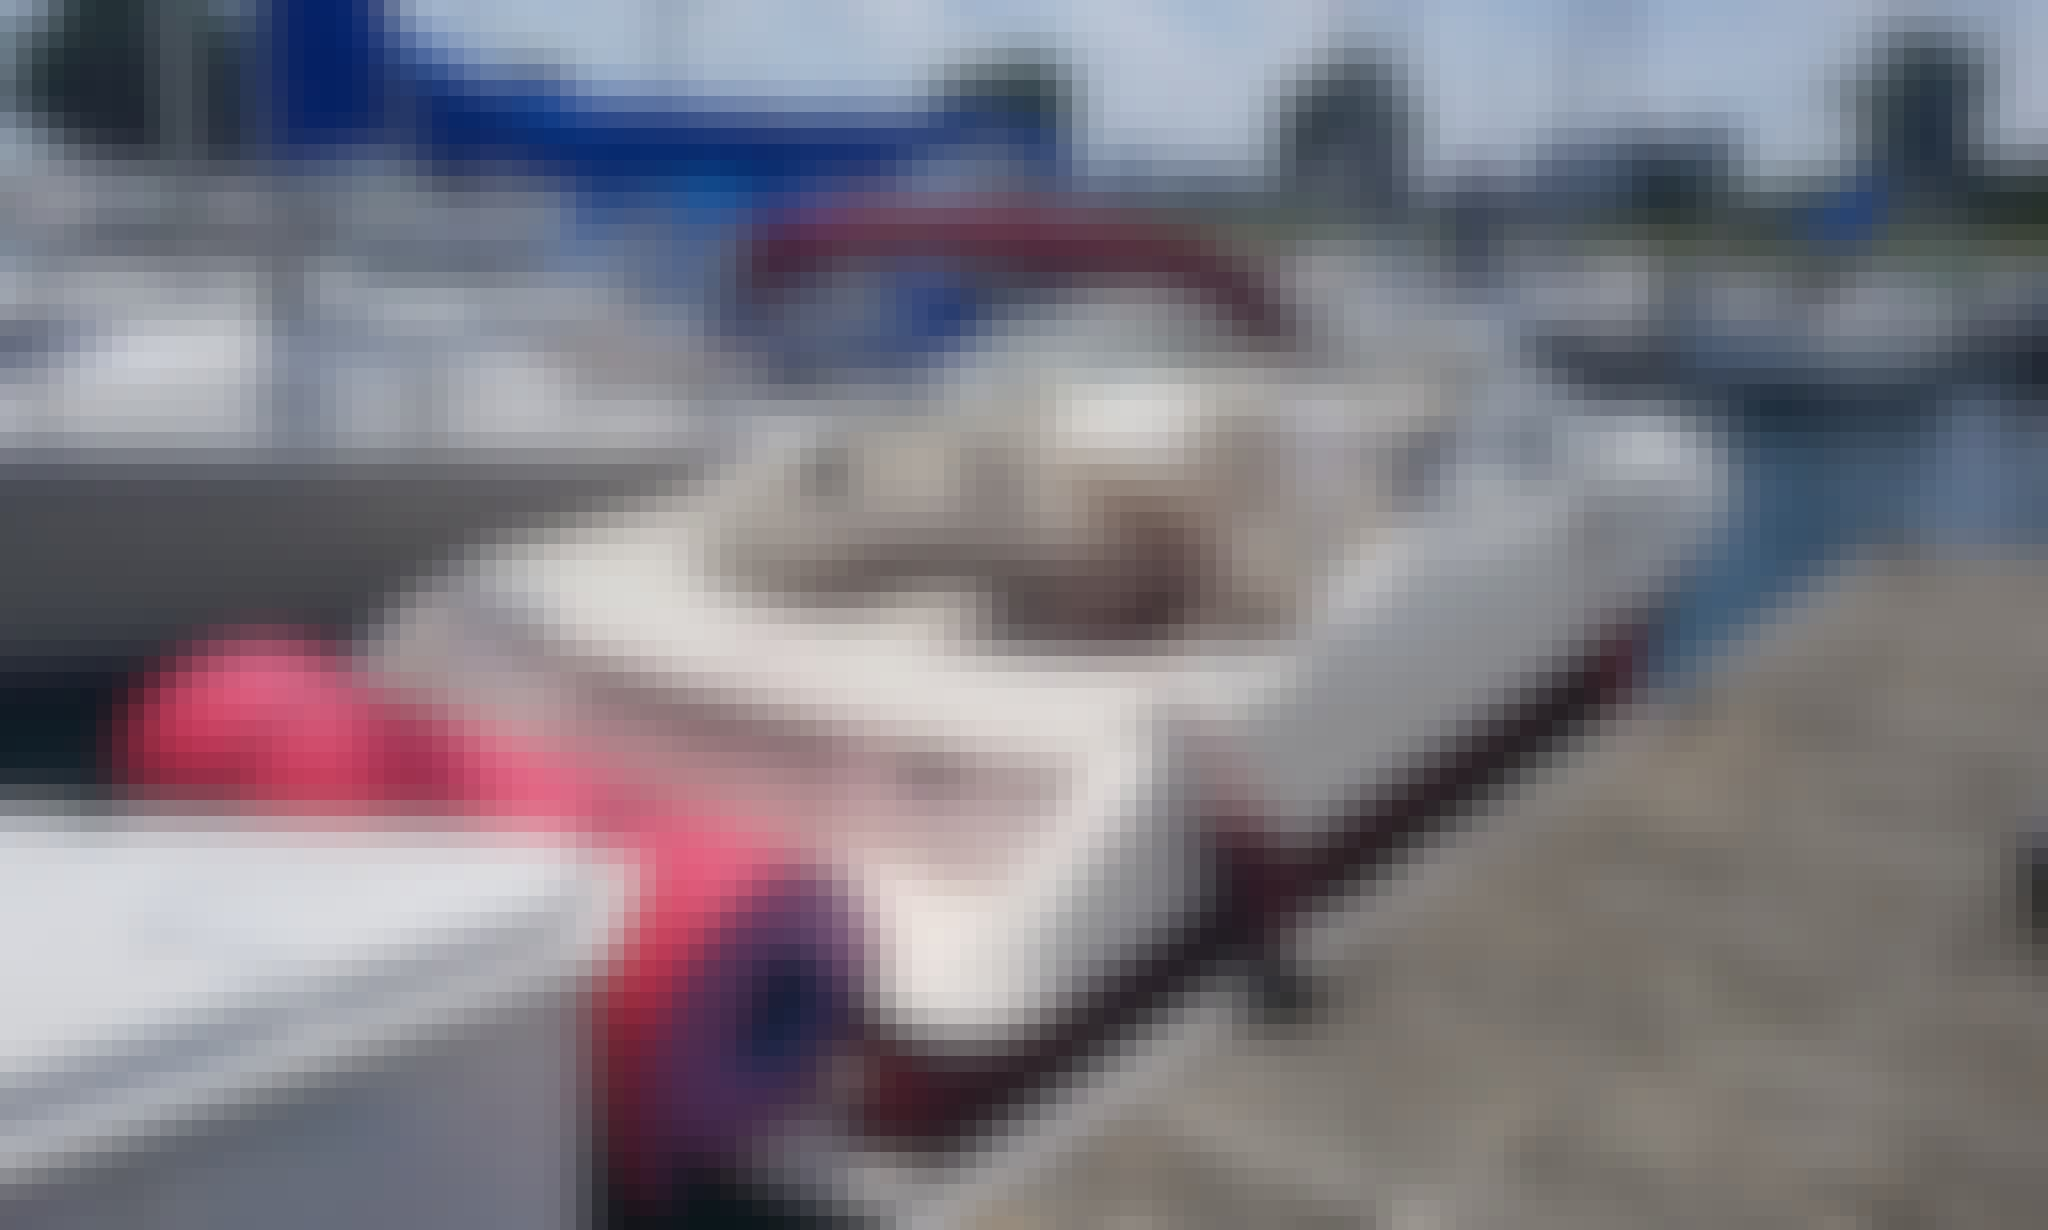 27 ft Chris Craft Playpen Bound with Water Toys USCG Certified Captain Provided